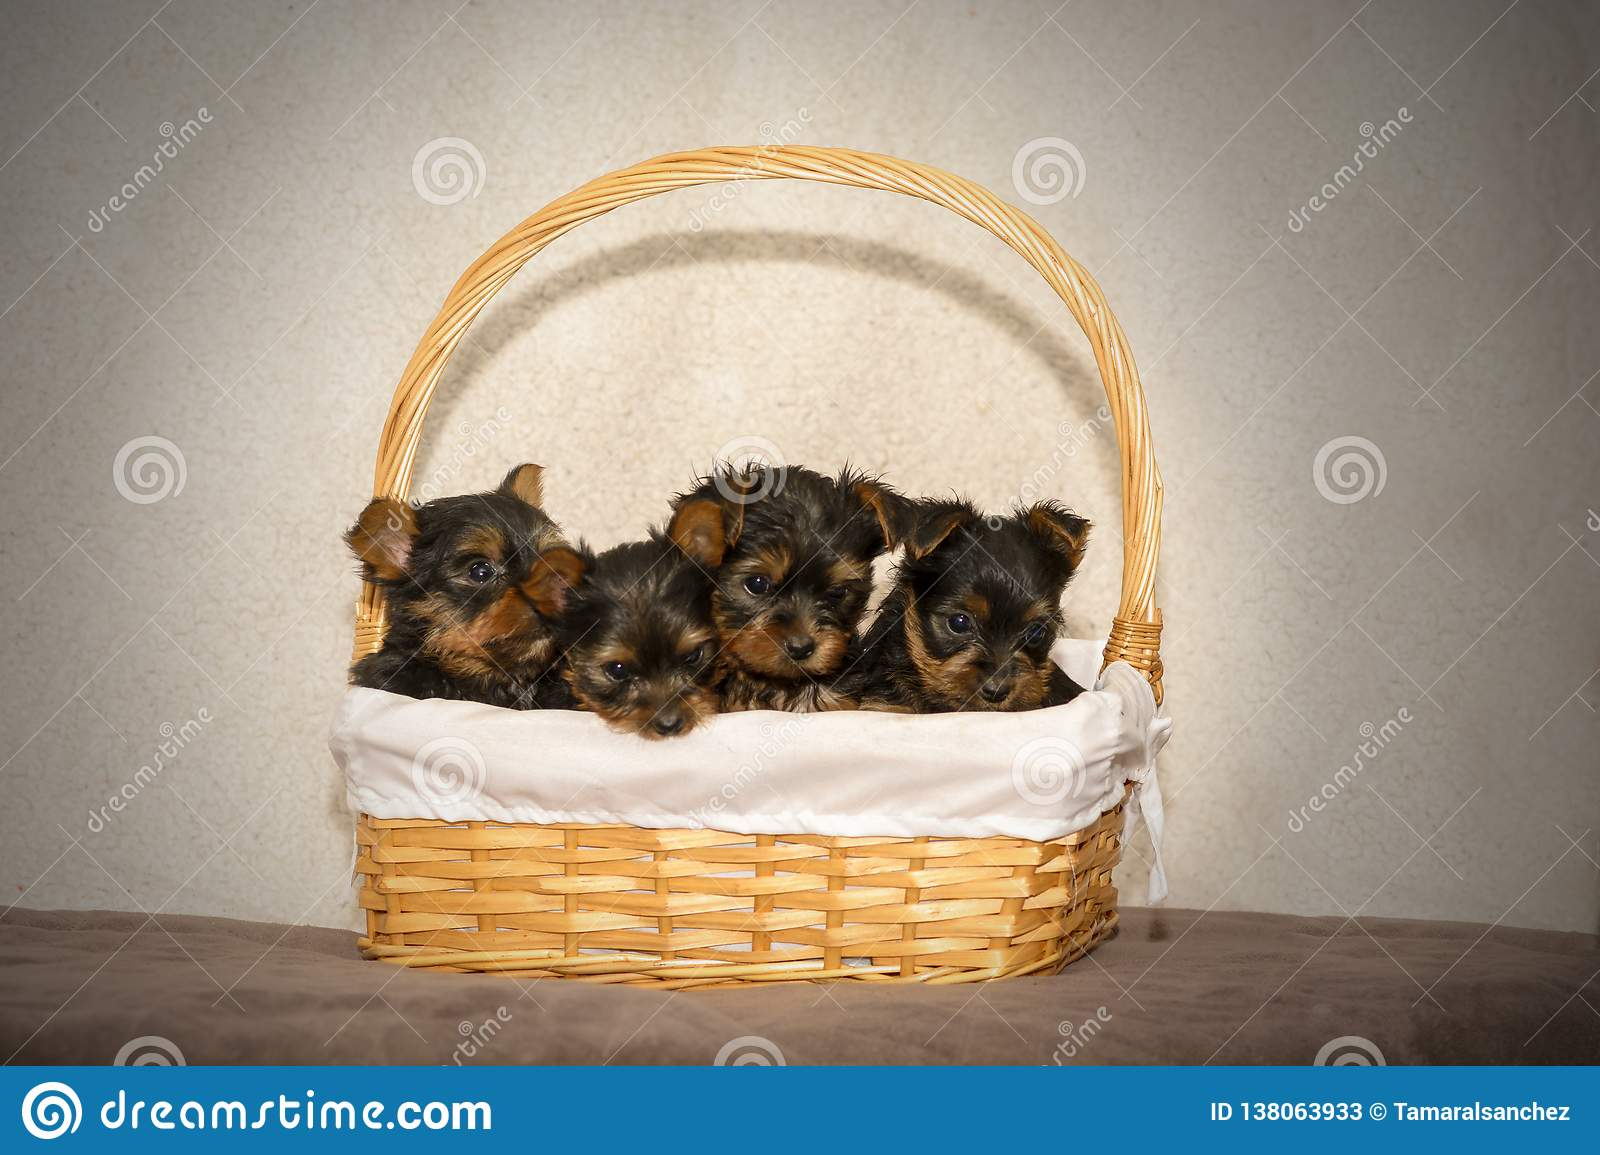 Four Yorkshire Terrier puppies in a wicket basket